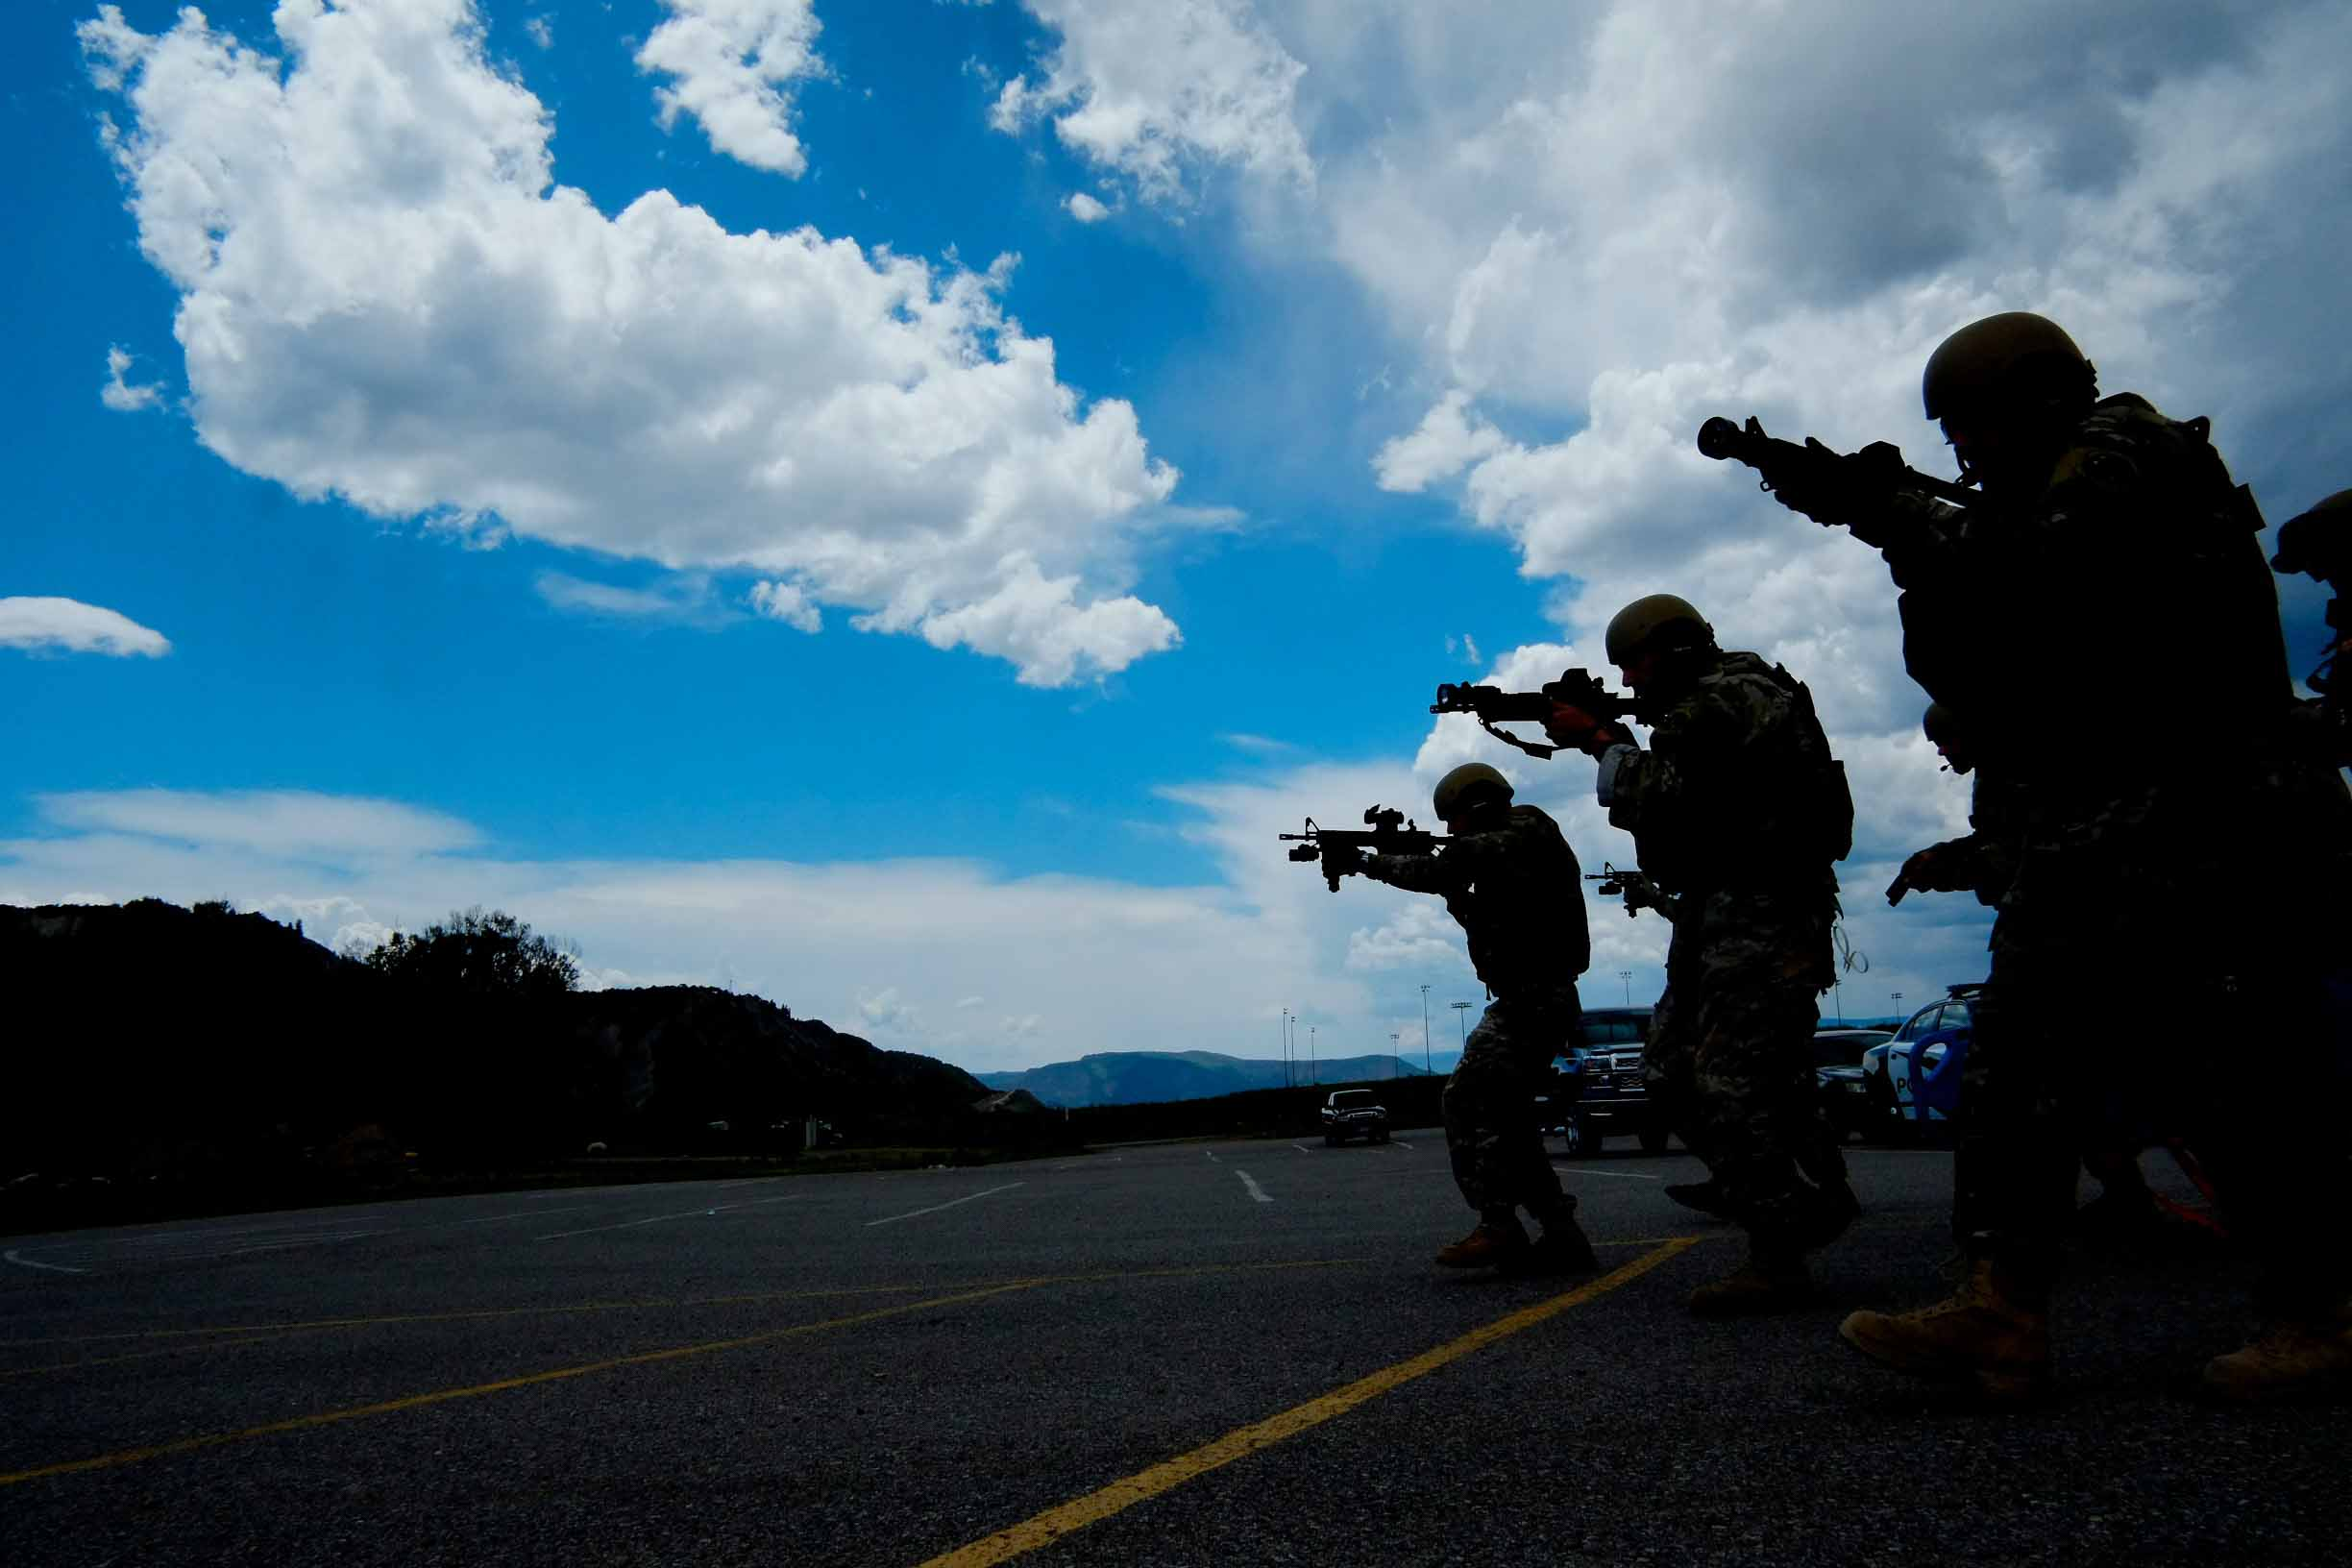 Members of Eagle County's Special Operations Unit, all local officers including two doctors, swiftly move across a parking lot to a staged victim during a training exercise in Eagle, Colo. on Thursday, June 12, 2014.